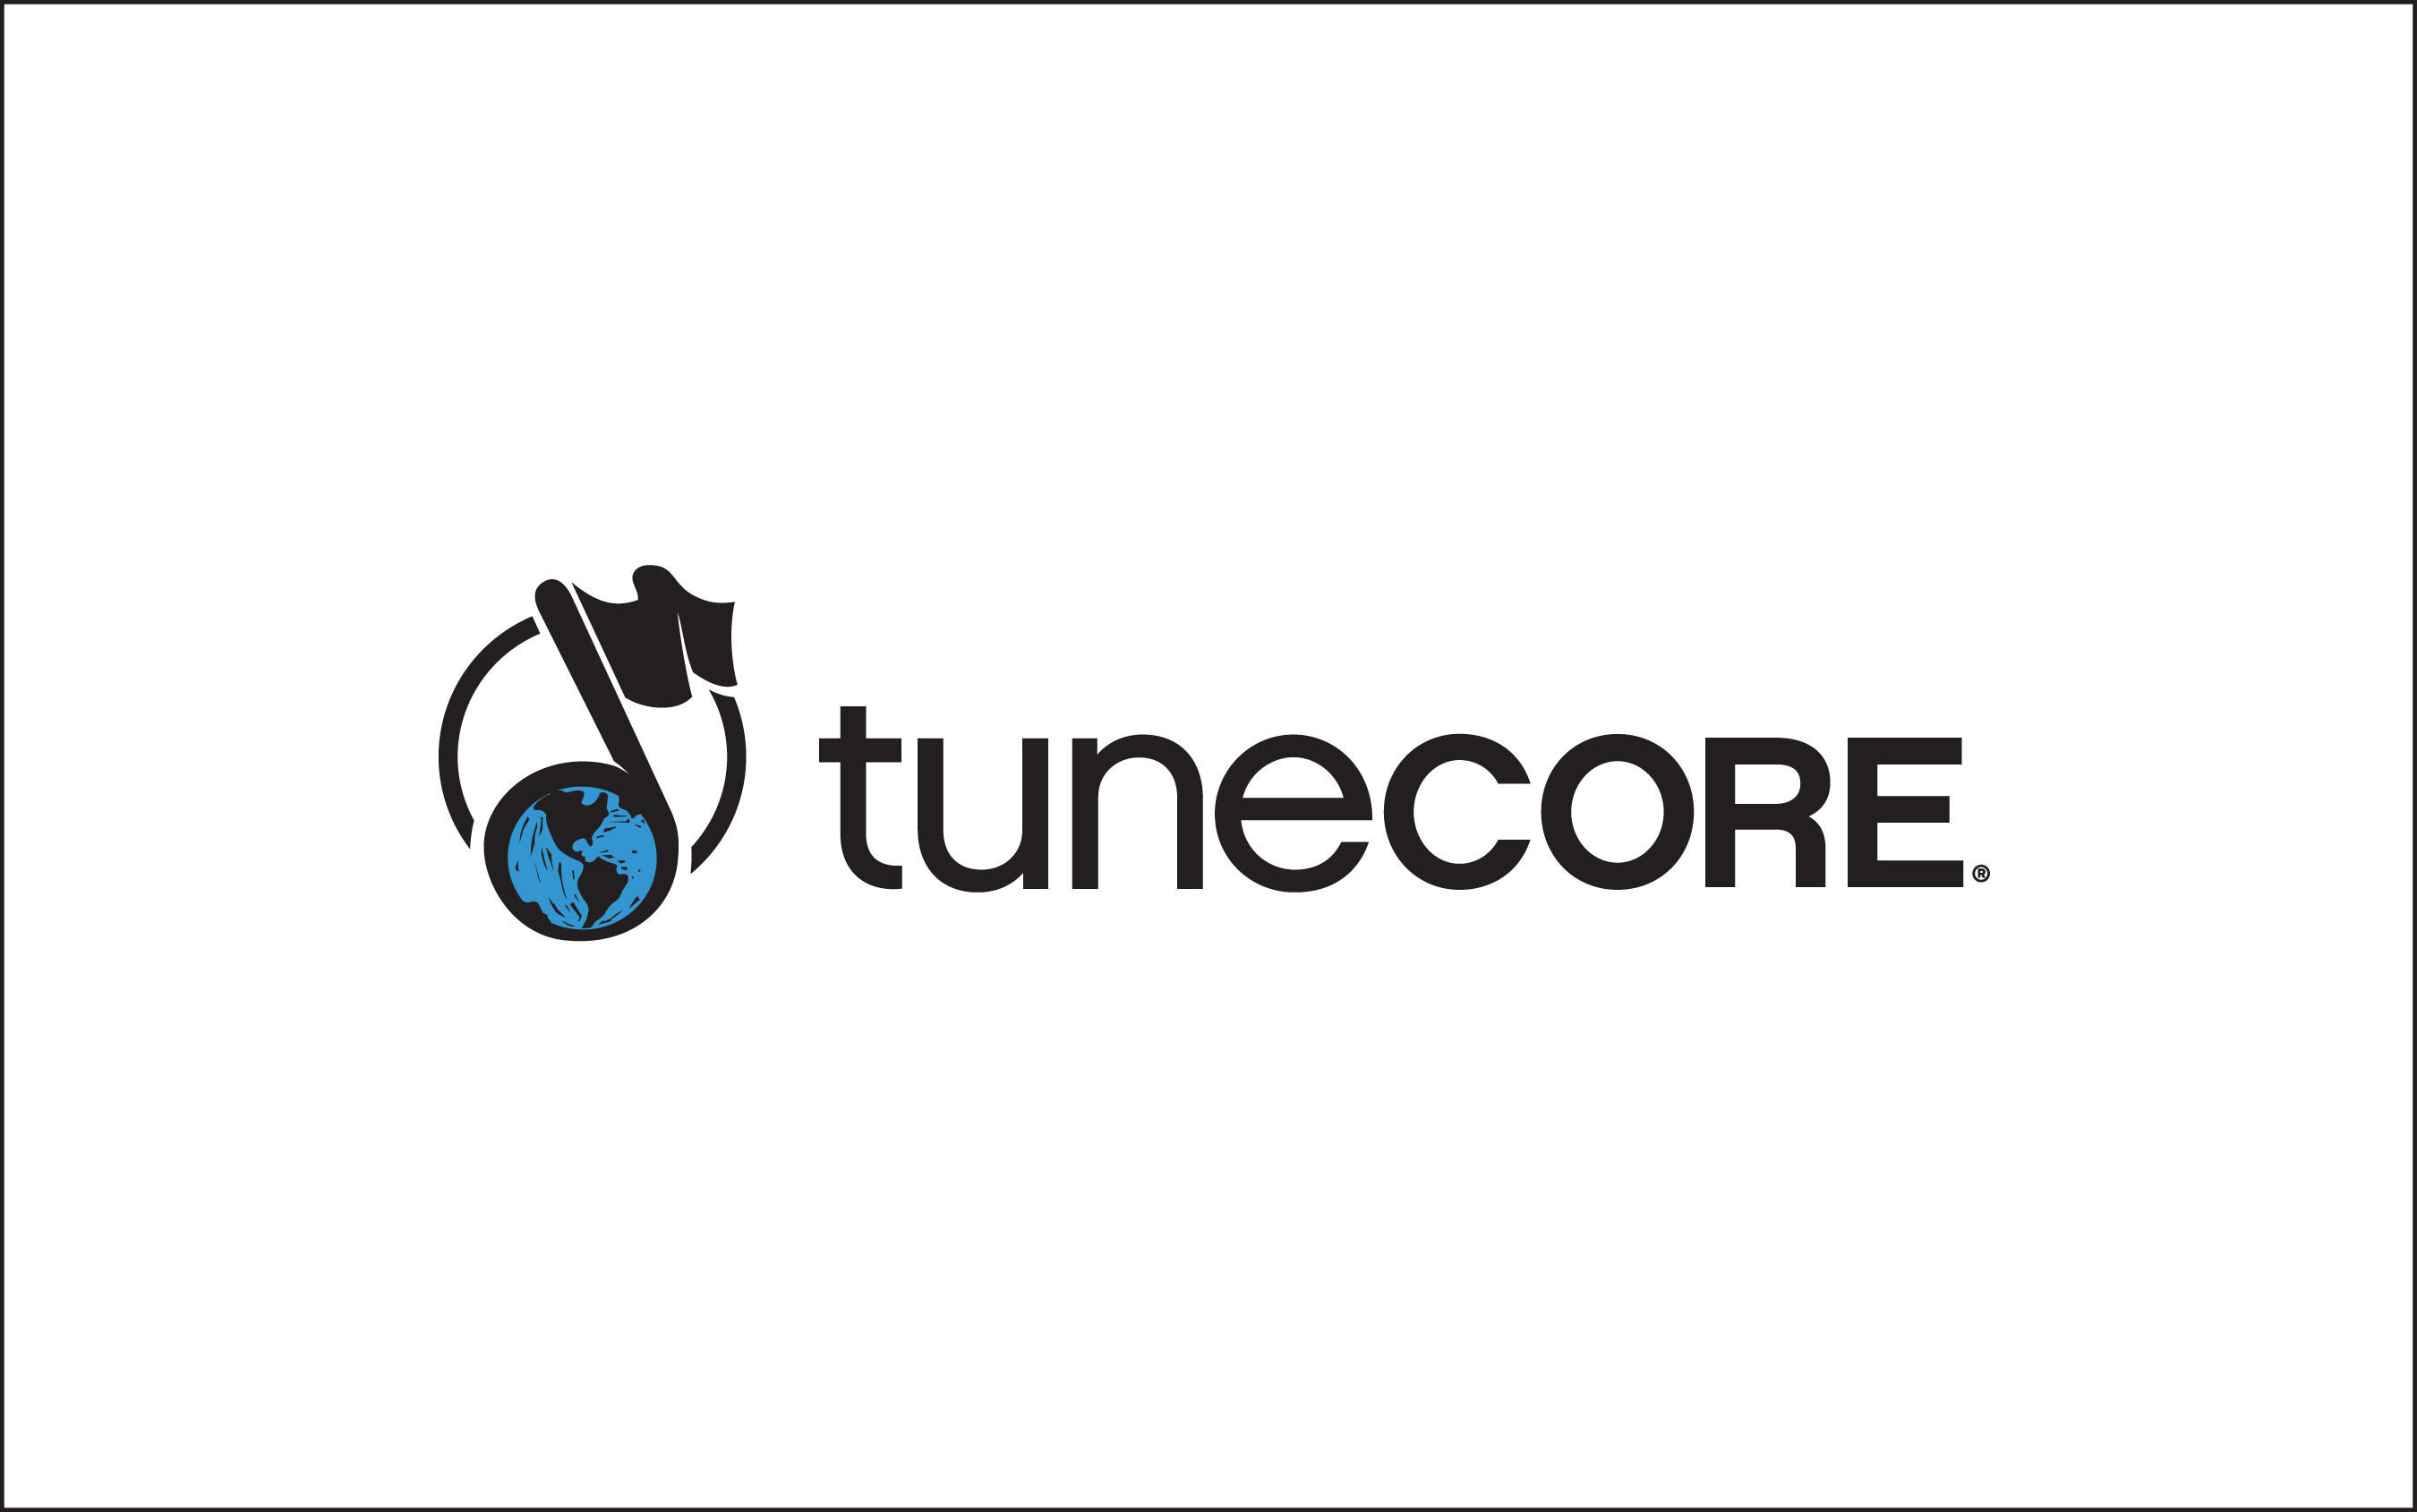 TuneCore brings more music to more people, while helping musicians and songwriters increase money-earning opportunities and take charge of their own careers. The company has one of the highest artist revenue-generating music catalogs in the world, earning TuneCore Artists $504 million on 12 billion streams and downloads since inception. TuneCore Music Distribution helps artists, labels and managers sell their music through iTunes, Amazon MP3, Spotify and other major download and streaming sites while...